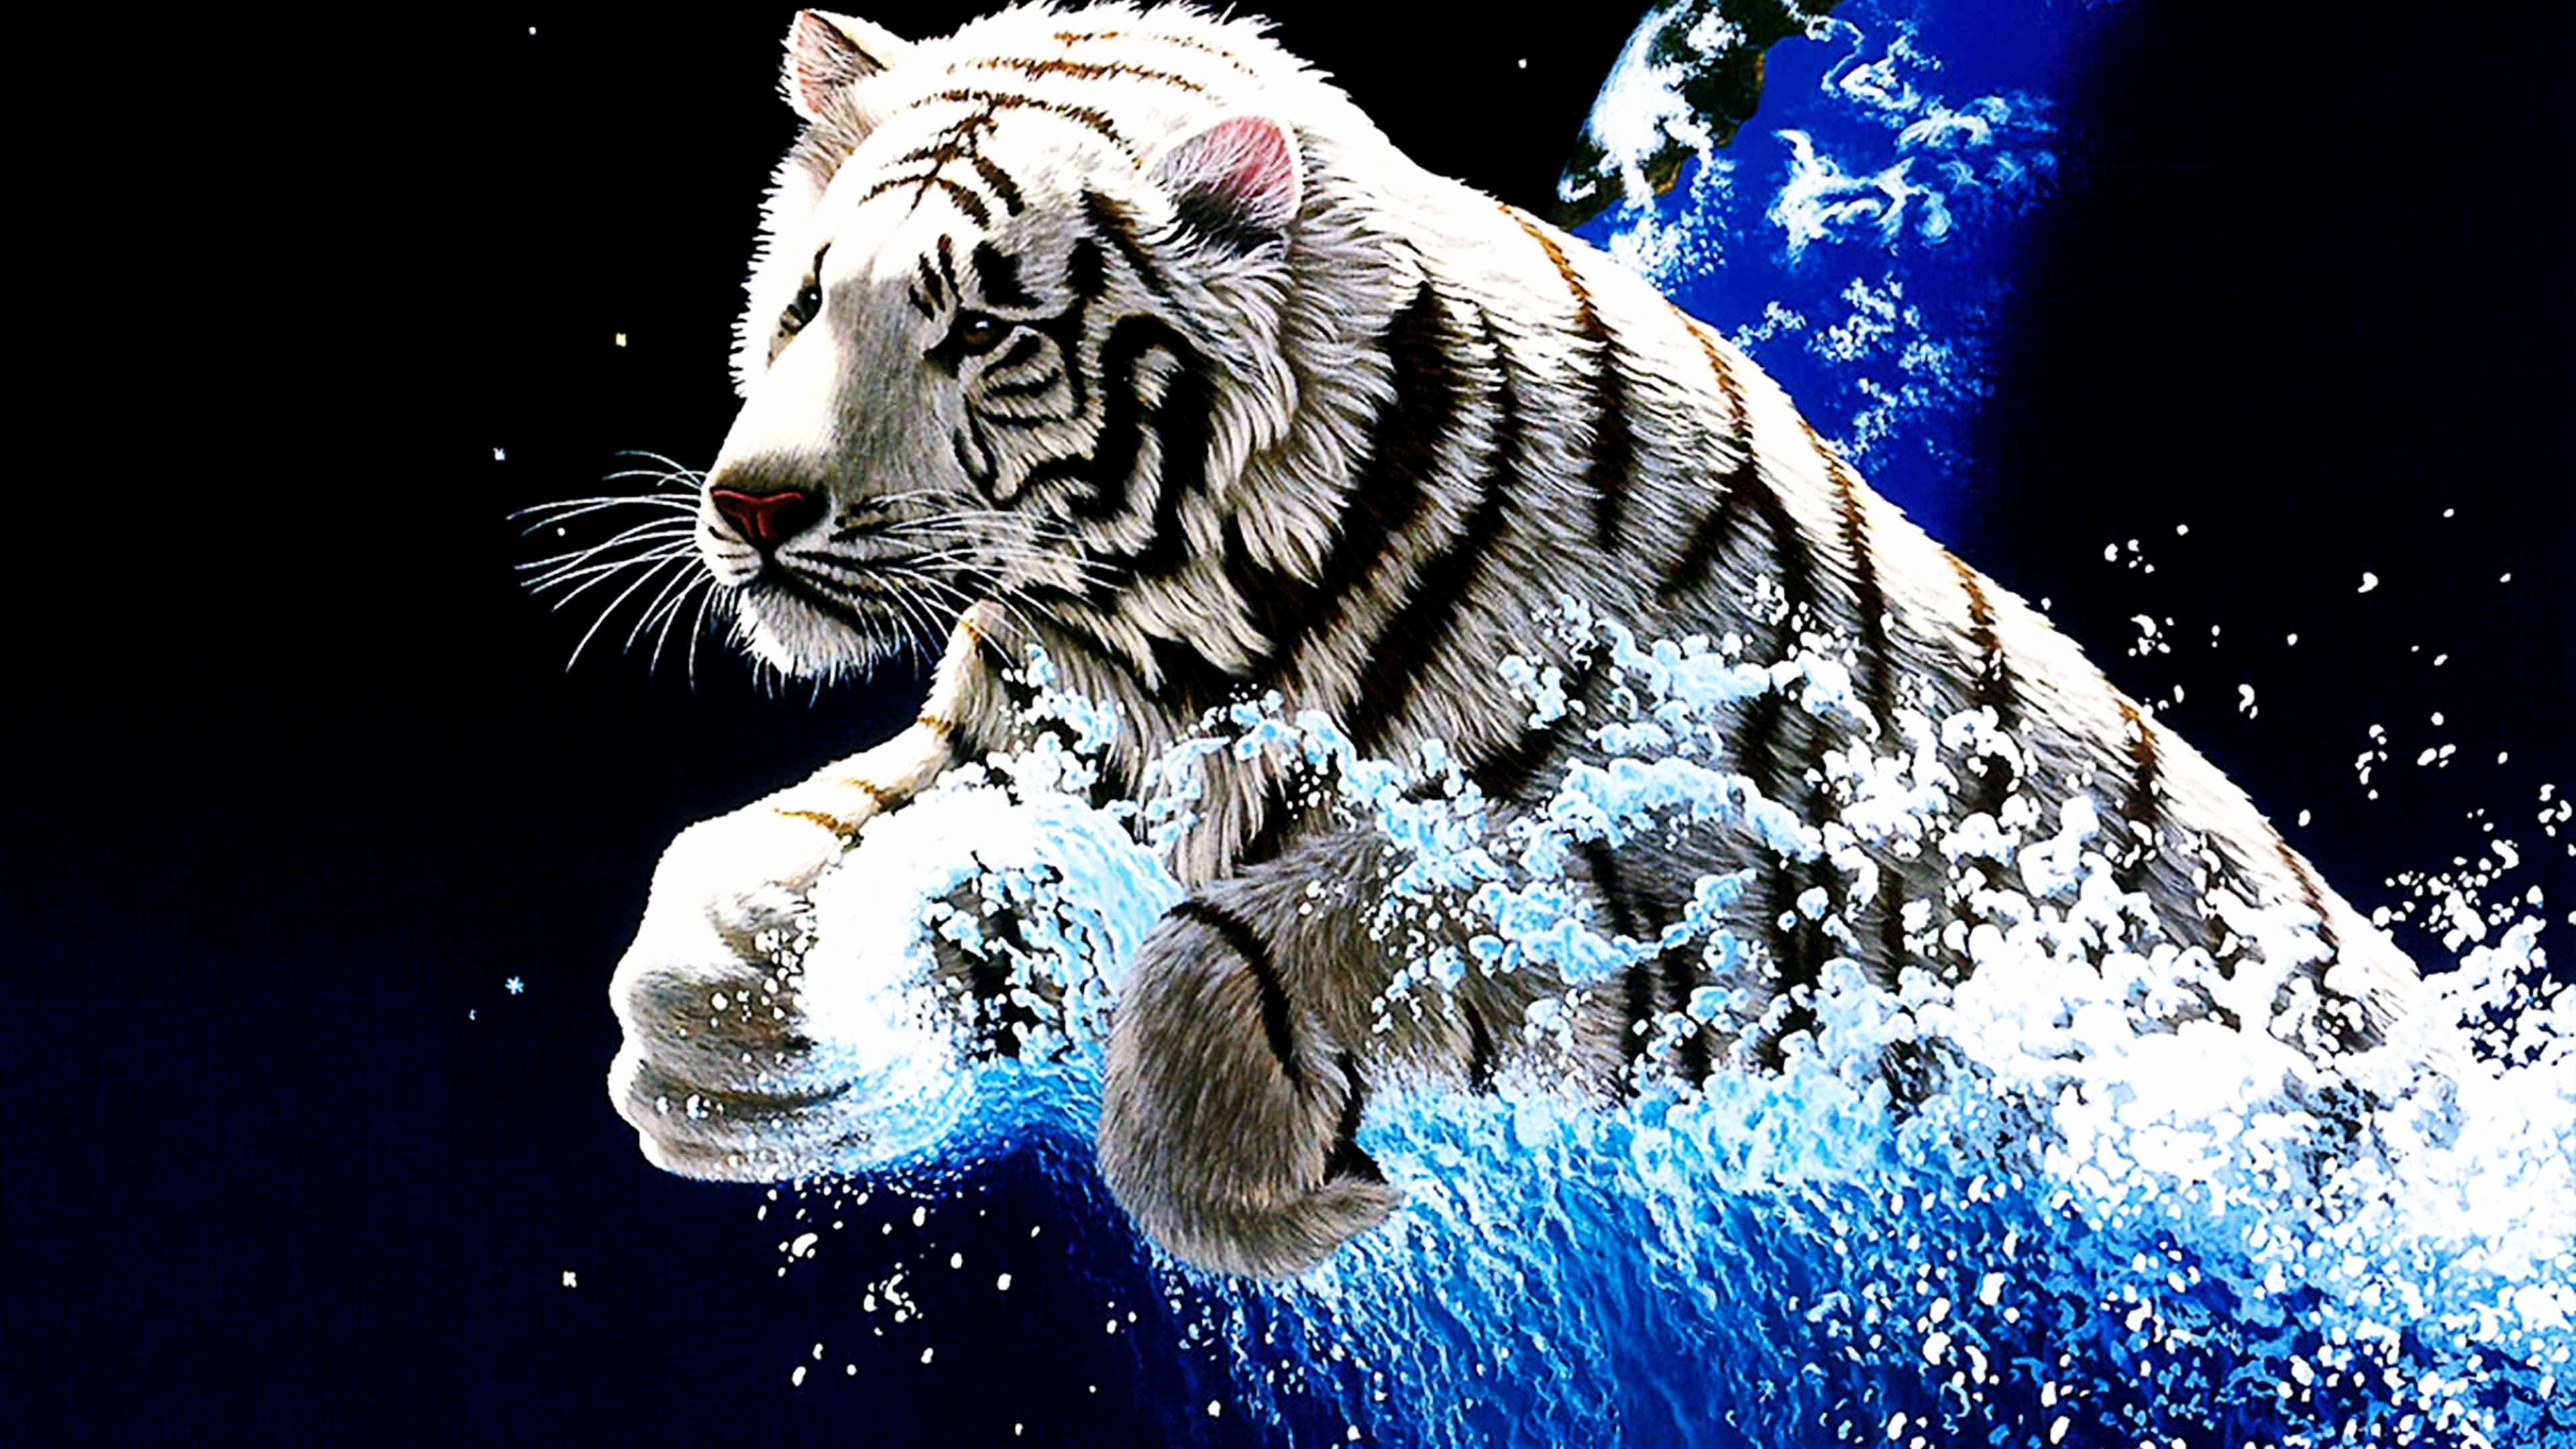 3d Animation Wallpaper Iphone Hd 1080p Tiger Tiger Wallpaper Tiger Pictures Animal Wallpaper